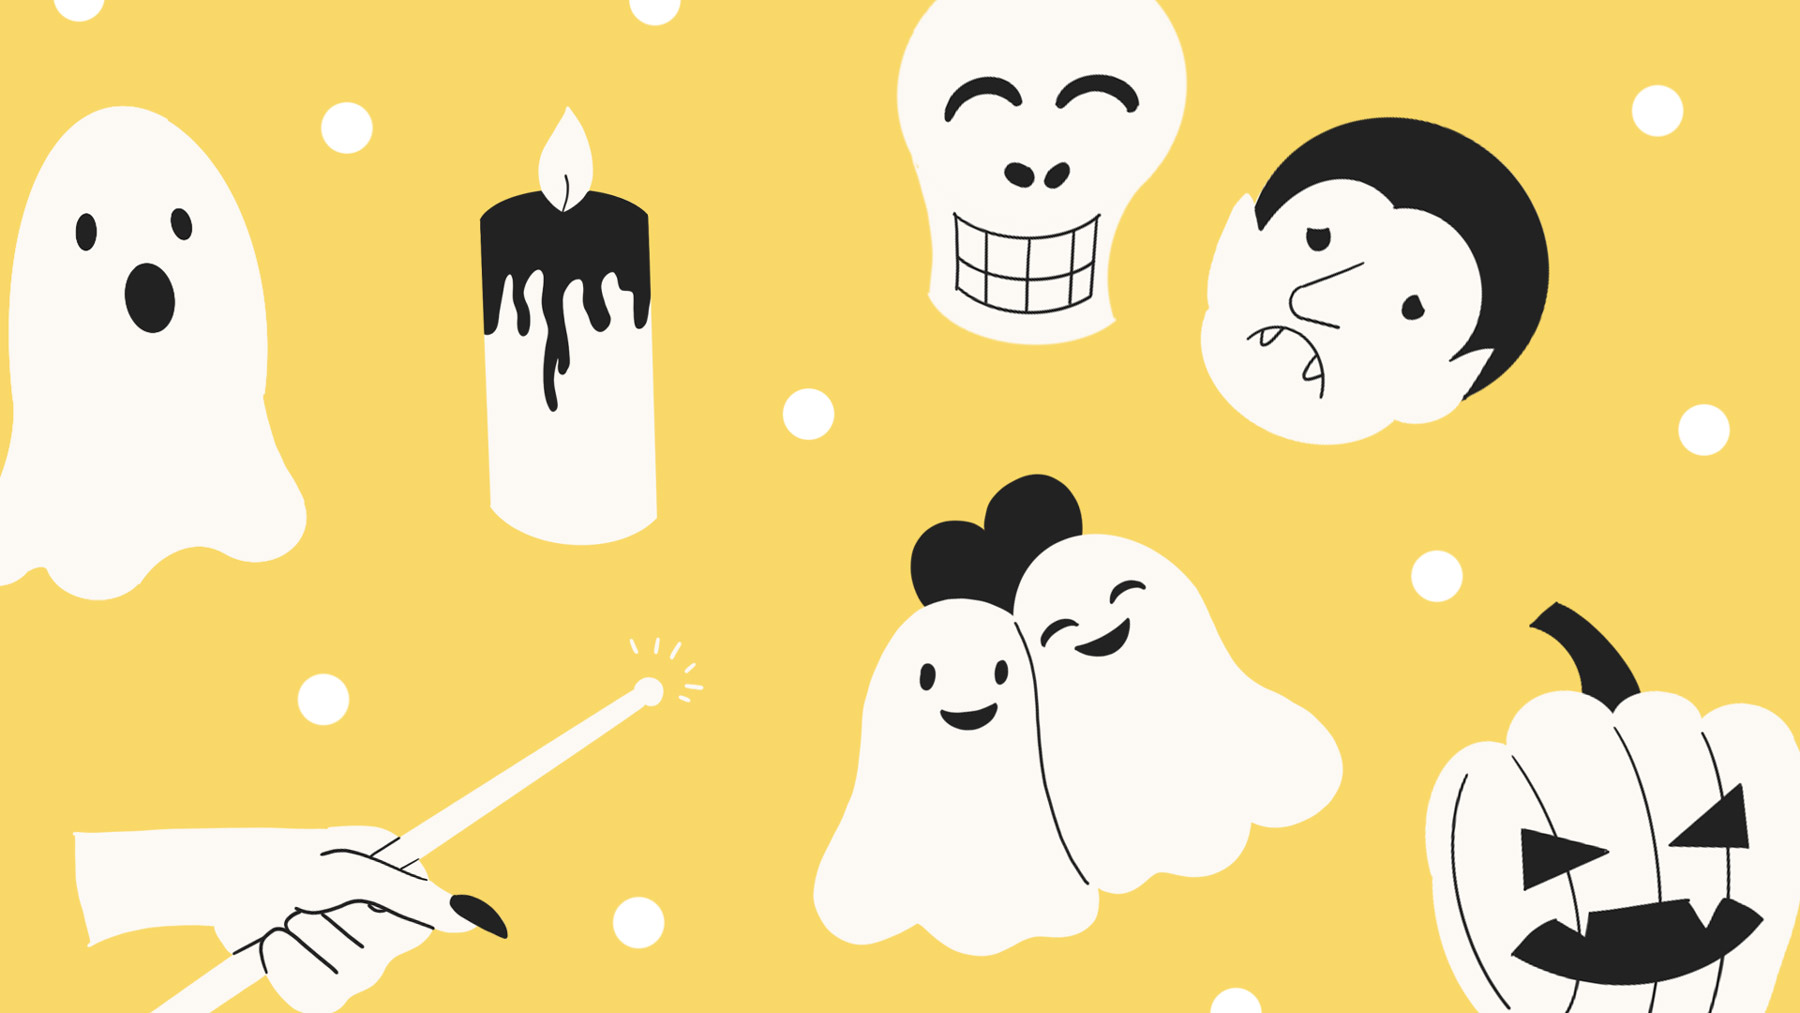 Halloween puns - funny puns and jokes for kids and adults